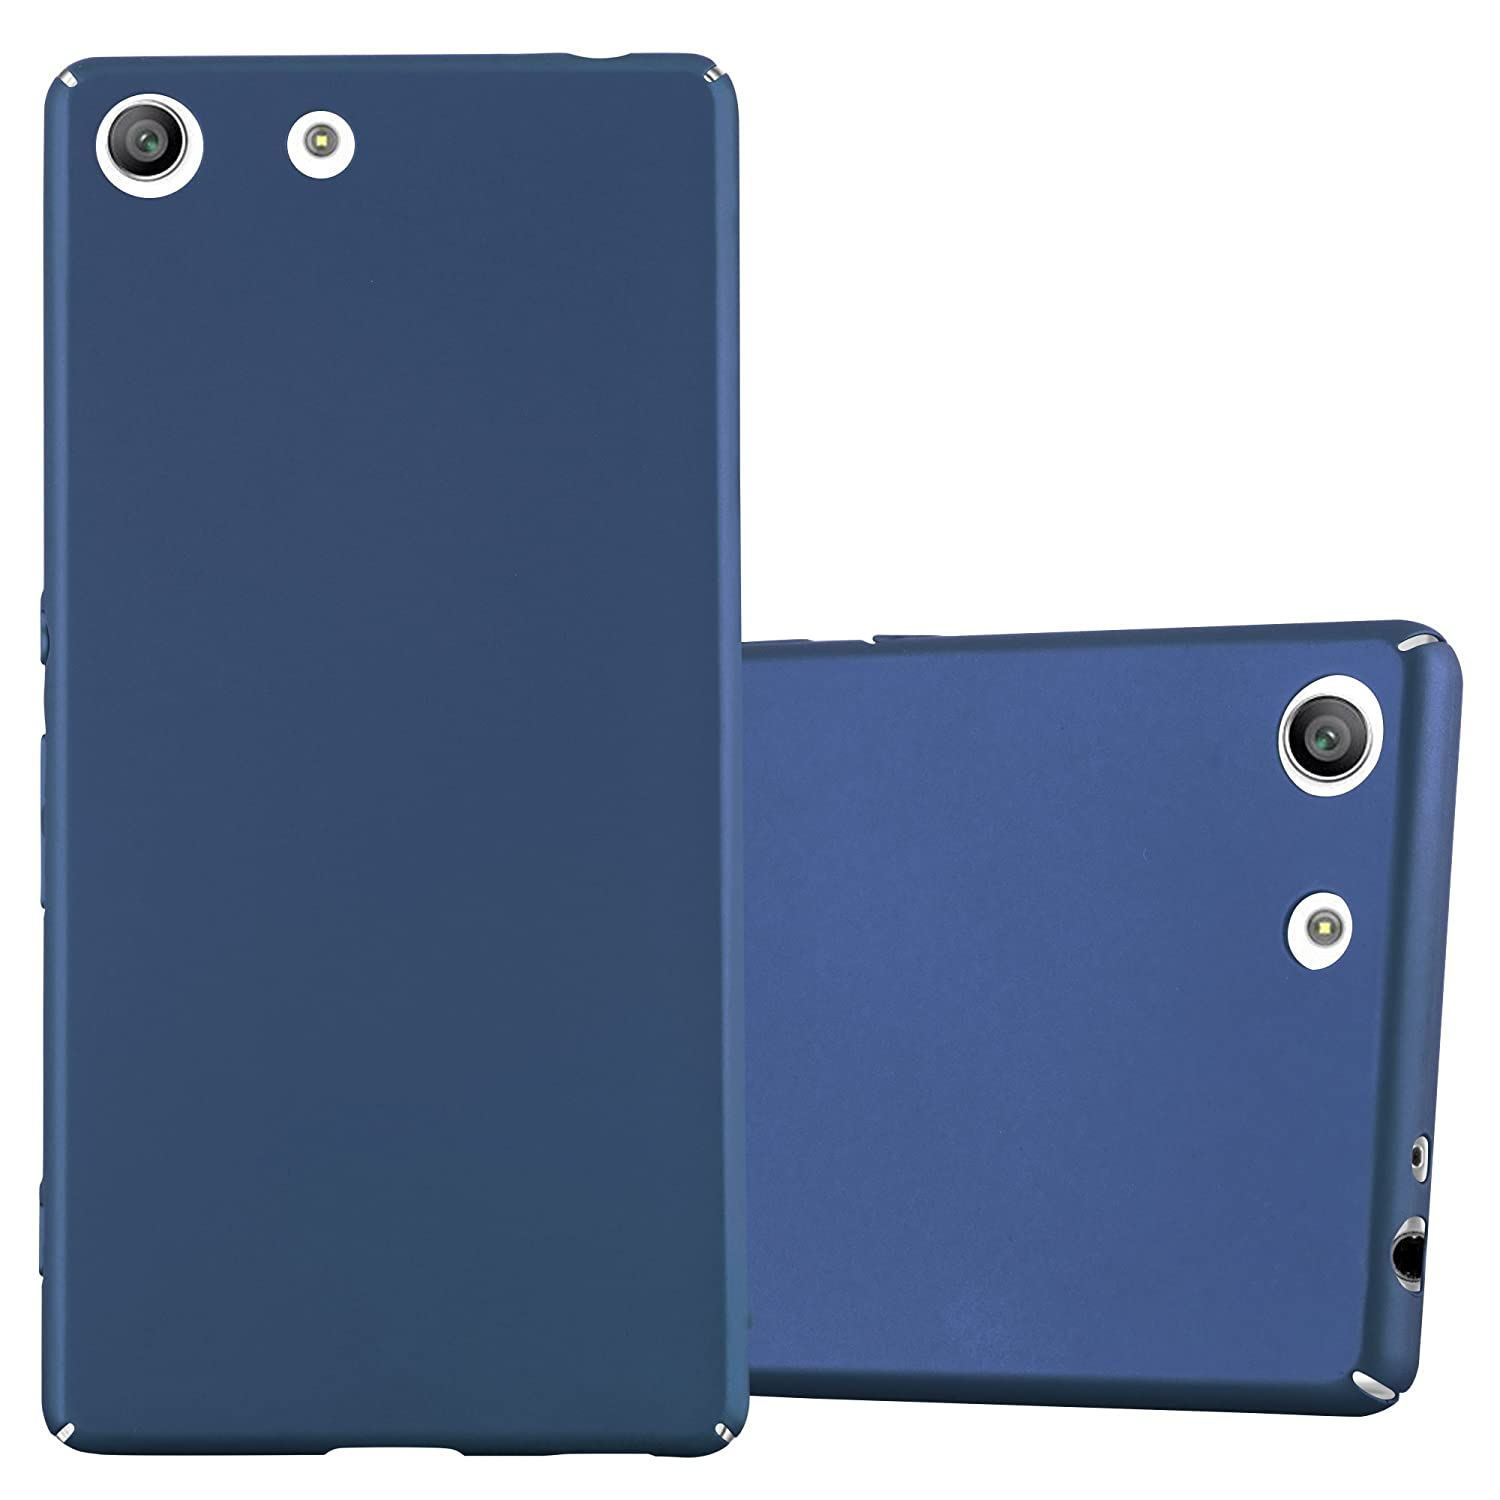 separation shoes d64dd 316eb Cadorabo Case Works with Sony Xperia M5 in Metal Blue – Shockproof and  Scratch Resistent Plastic Hard Cover – Ultra Slim Protective Shell Bumper  ...